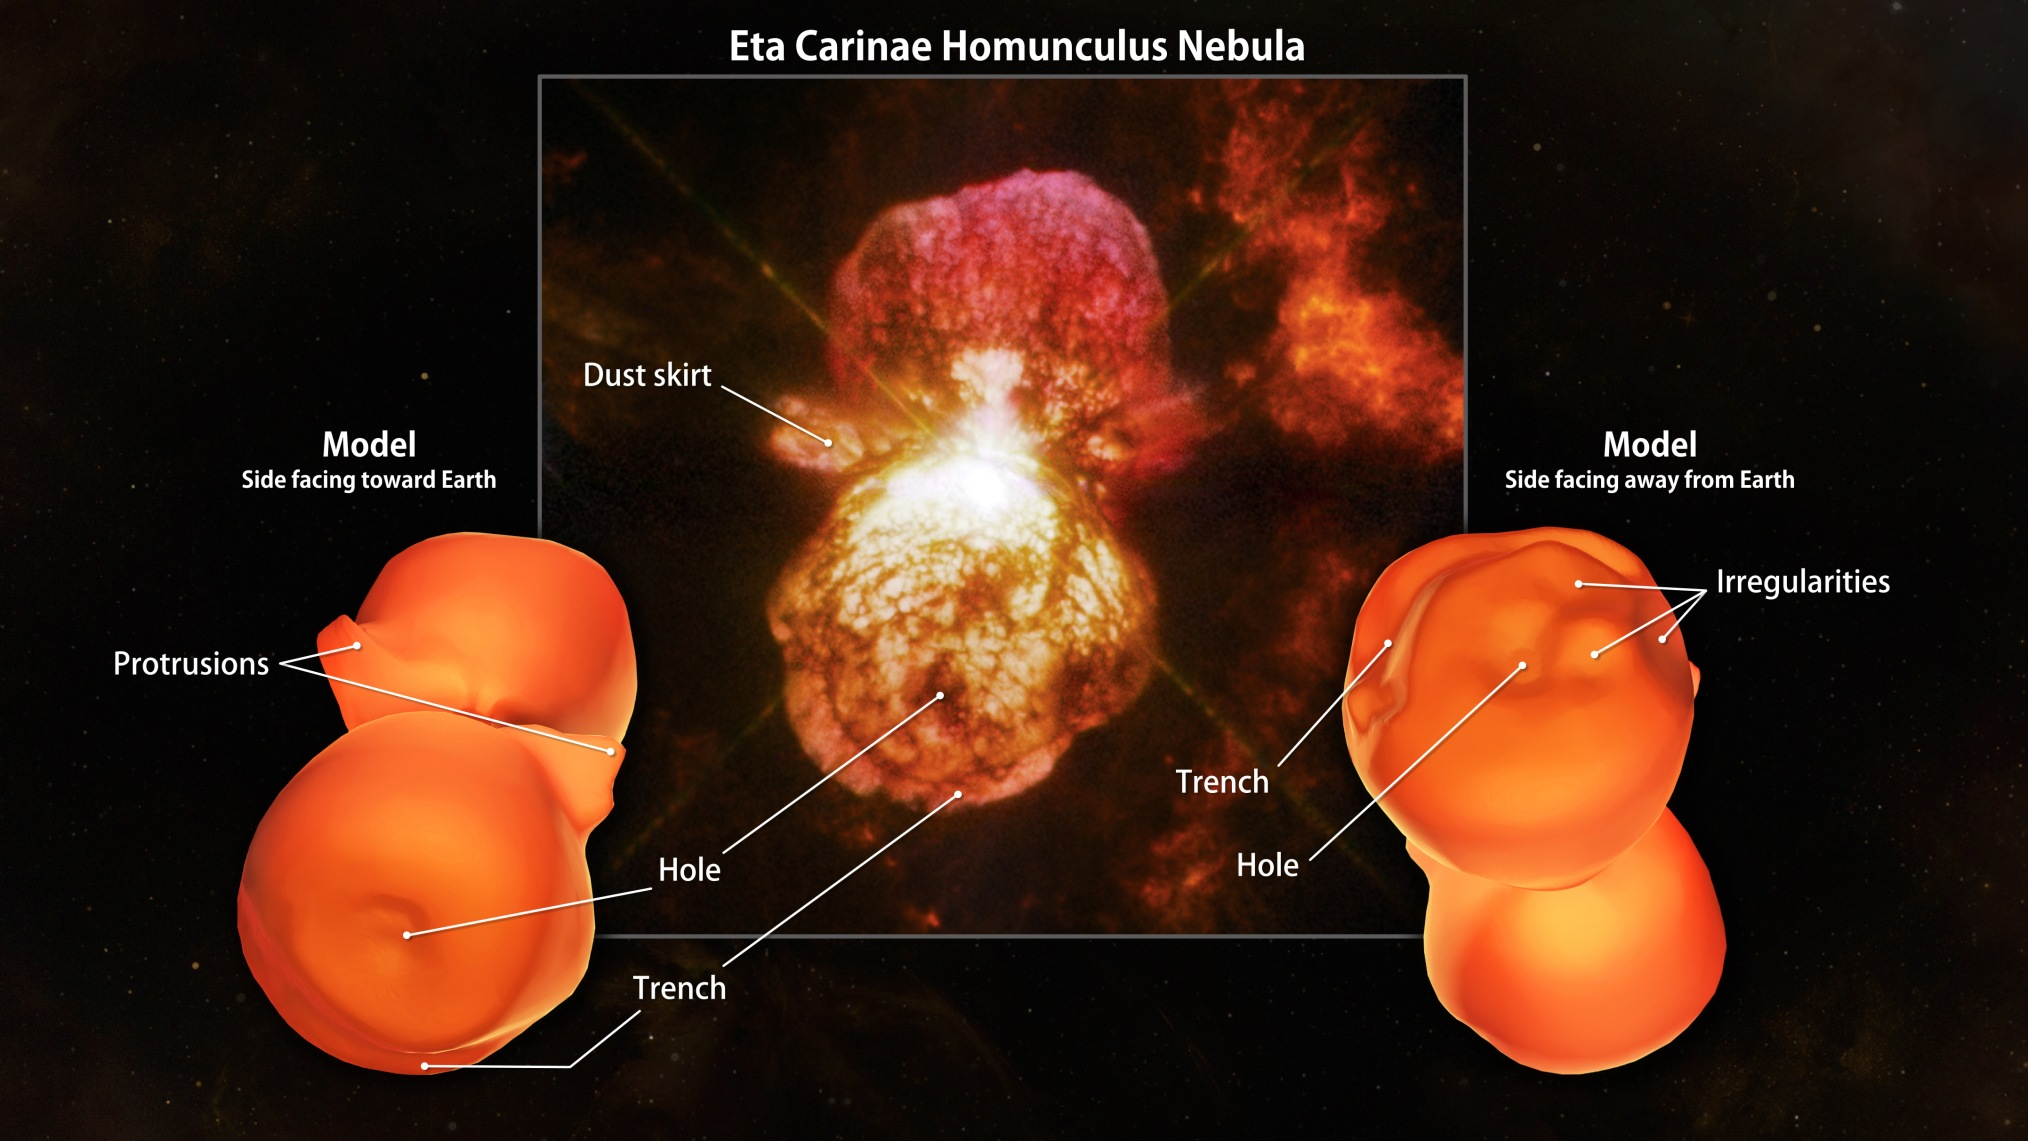 etacarinae_model_comparison_labels2048